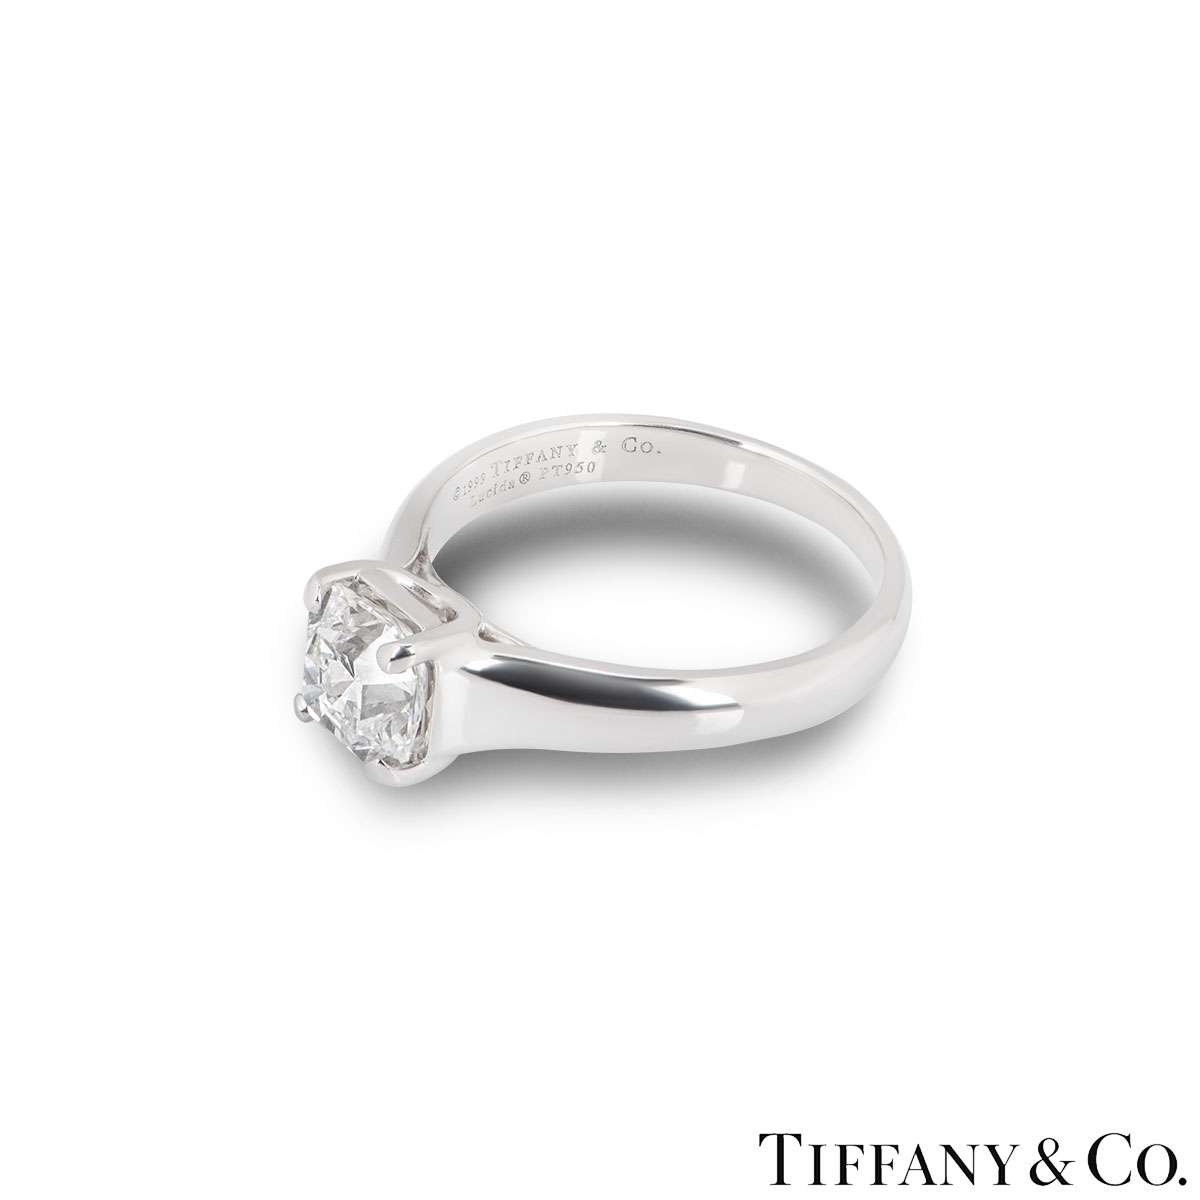 Tiffany & Co. Lucida Cut Diamond Ring 1.52ct G/VVS1